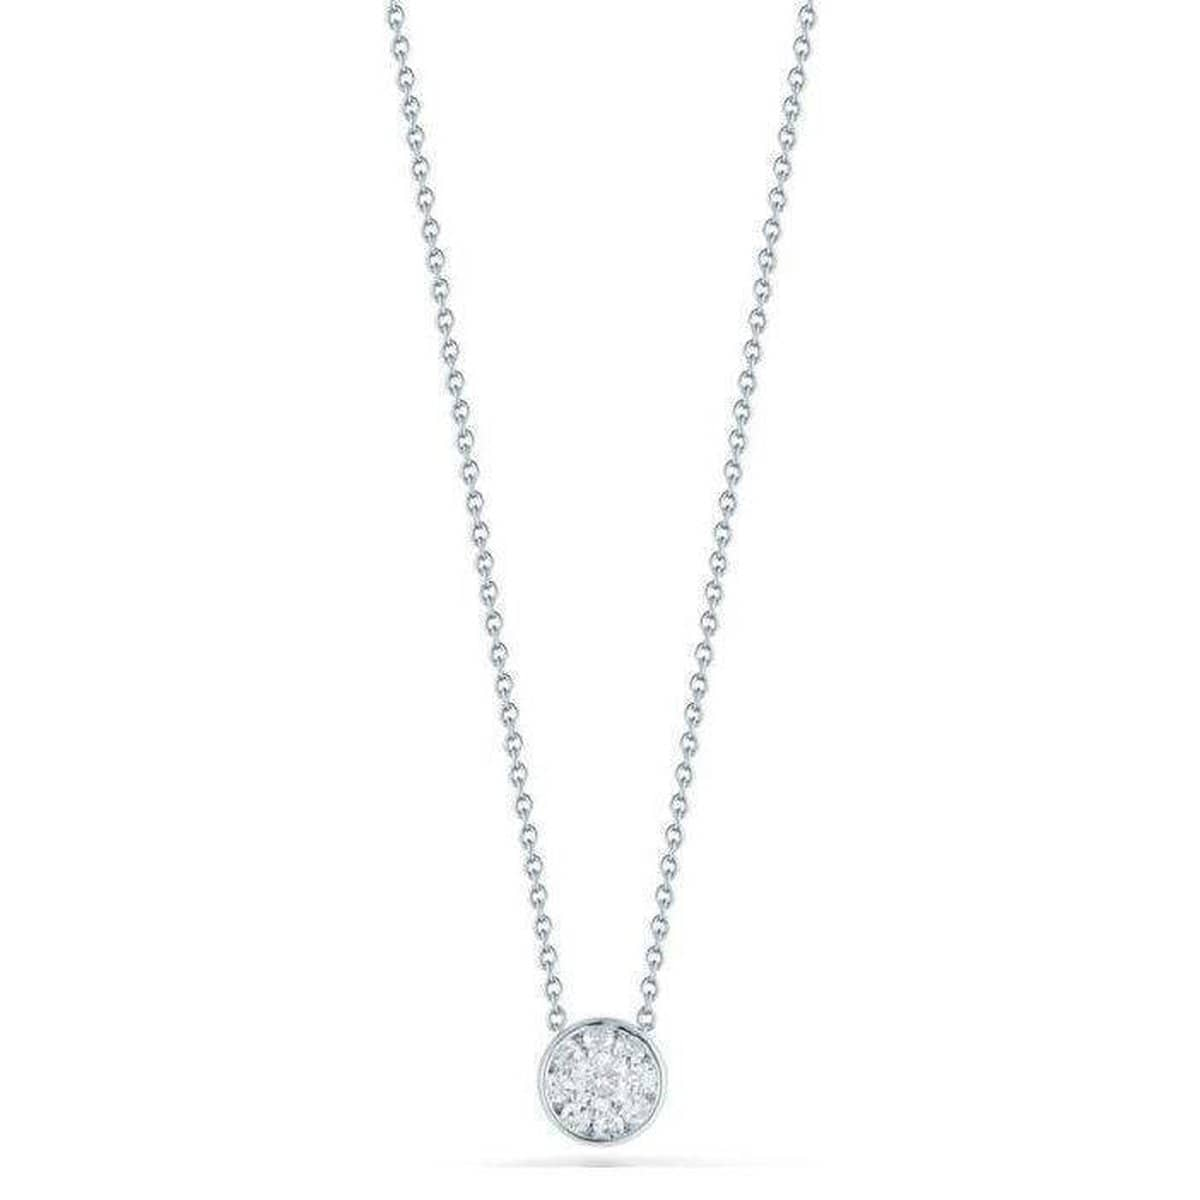 18k White Gold & Diamond Small Round Necklace - 518151AWCHX0-Roberto Coin-Renee Taylor Gallery